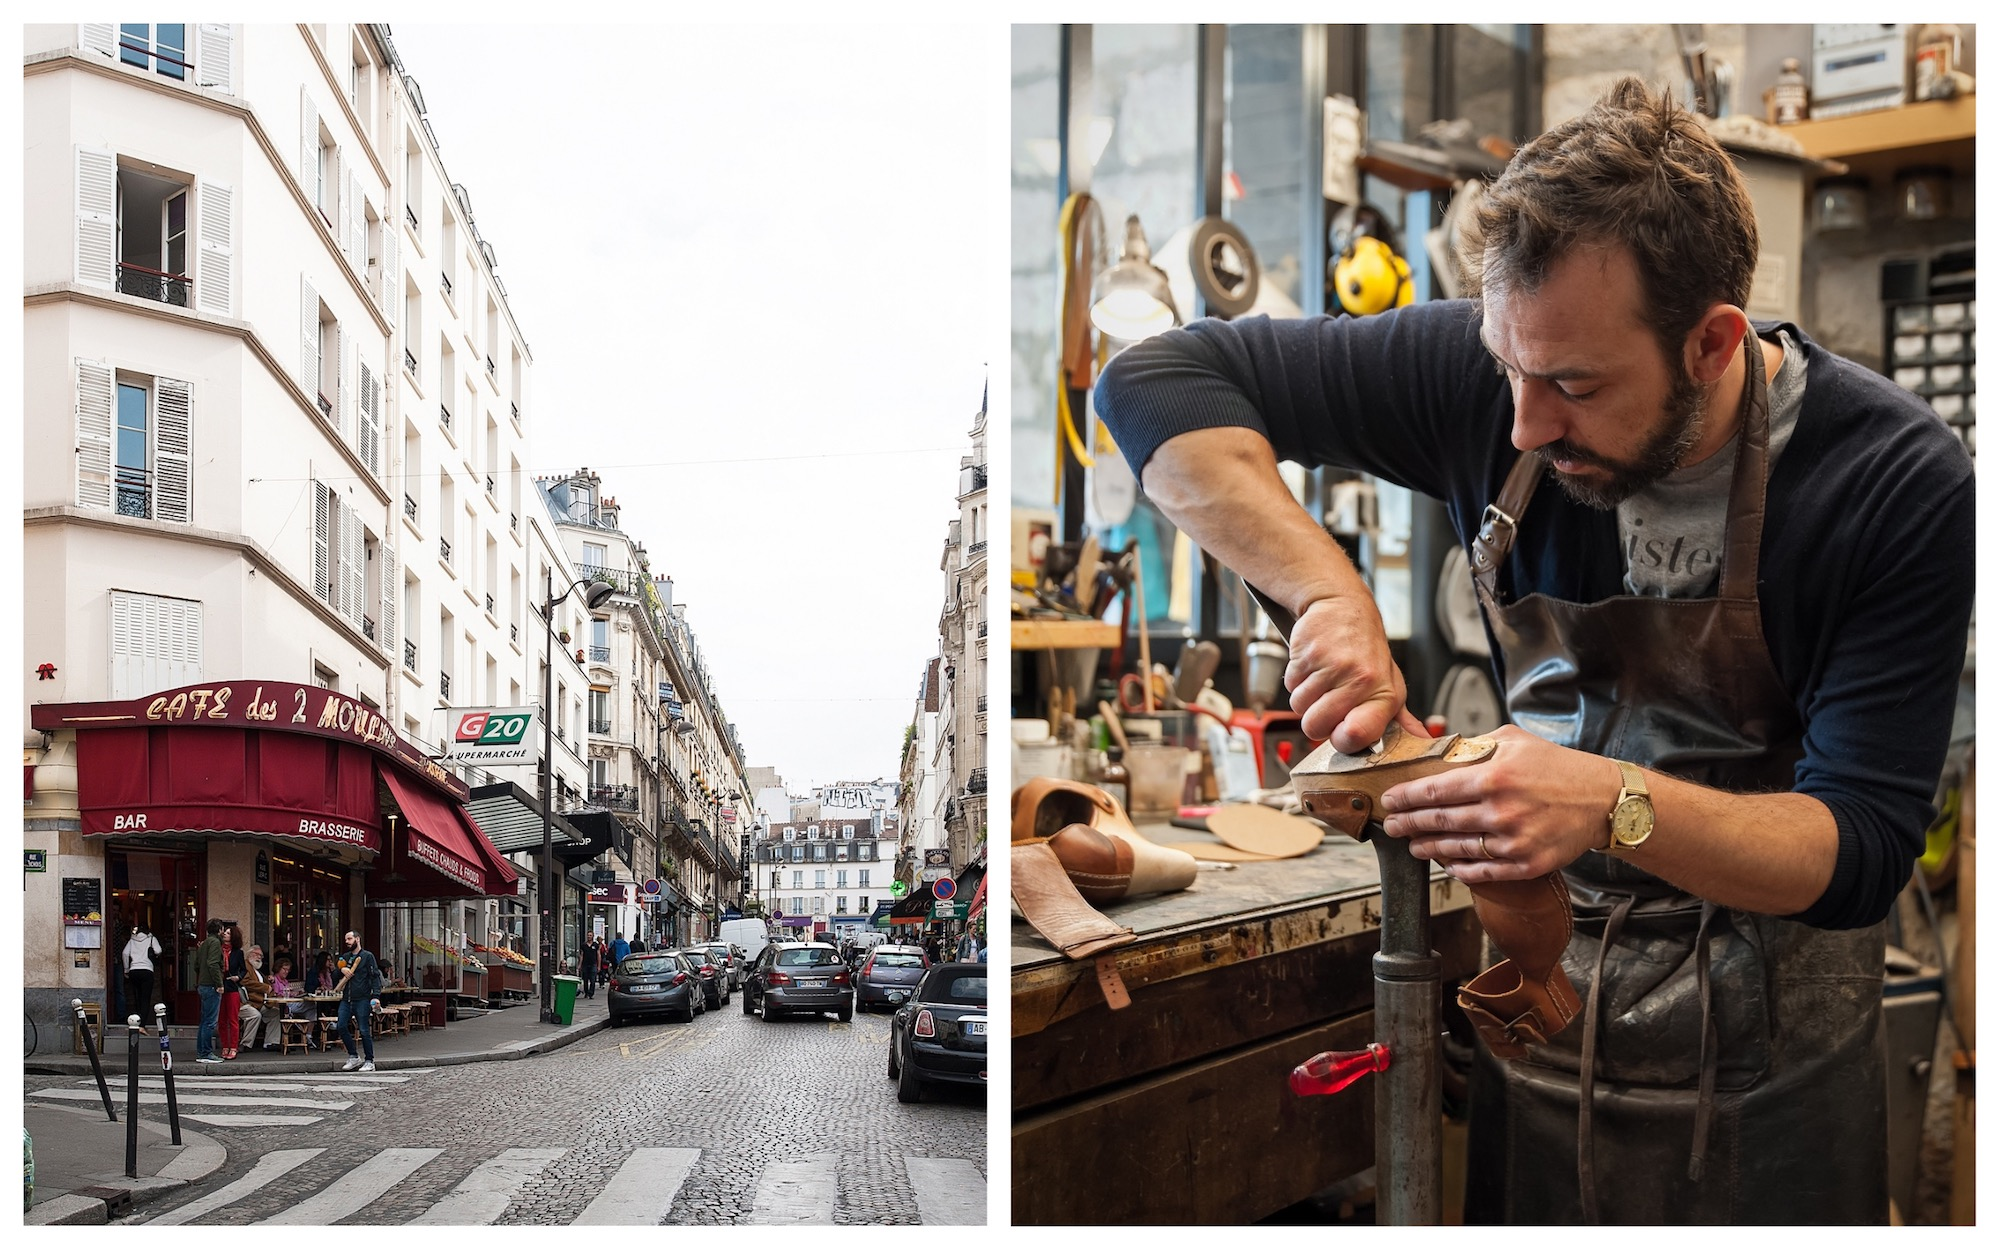 Artisanal cobbler Atelier Constance in Montmartre is located close to the Café des 2 Moulins in Montmartre (left). Cobble Jérôme Voisin working on the sole of a shoe in his workshop (right).